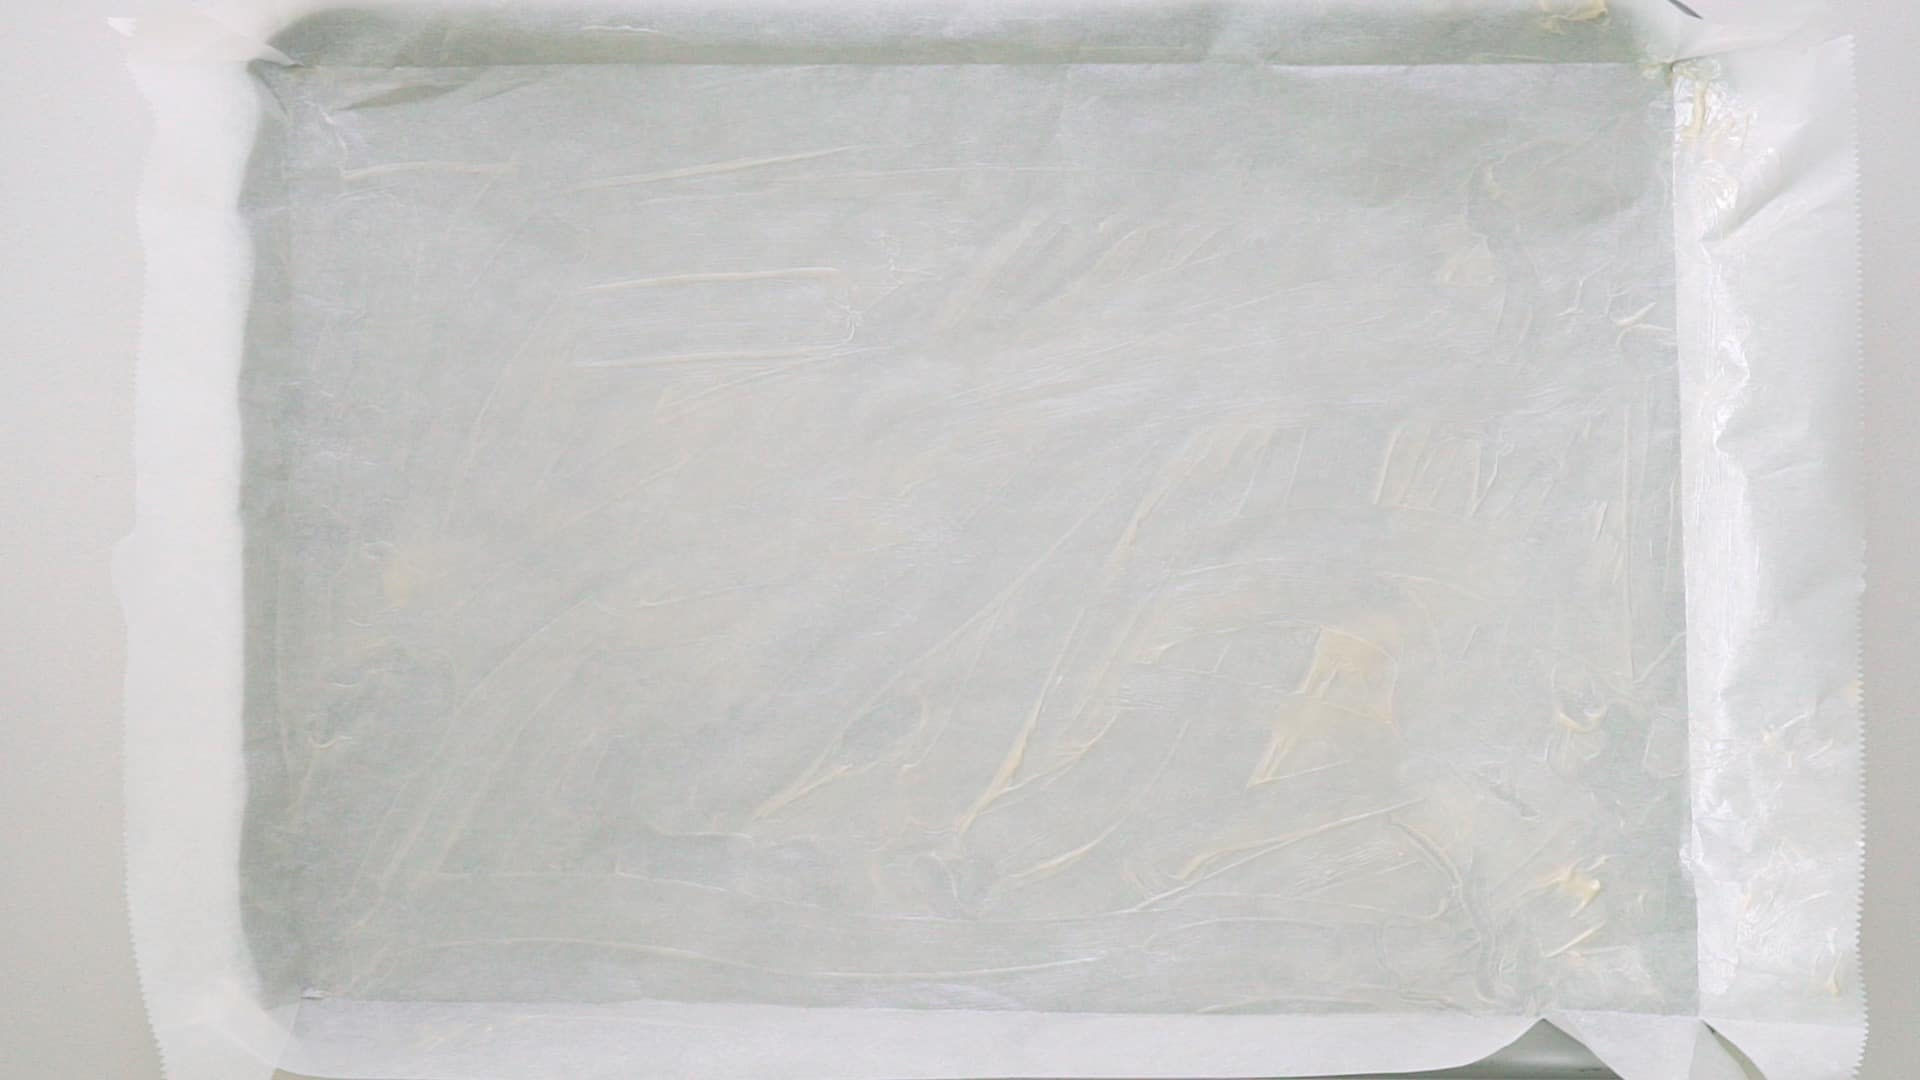 Buttered parchment paper in jelly roll pan.